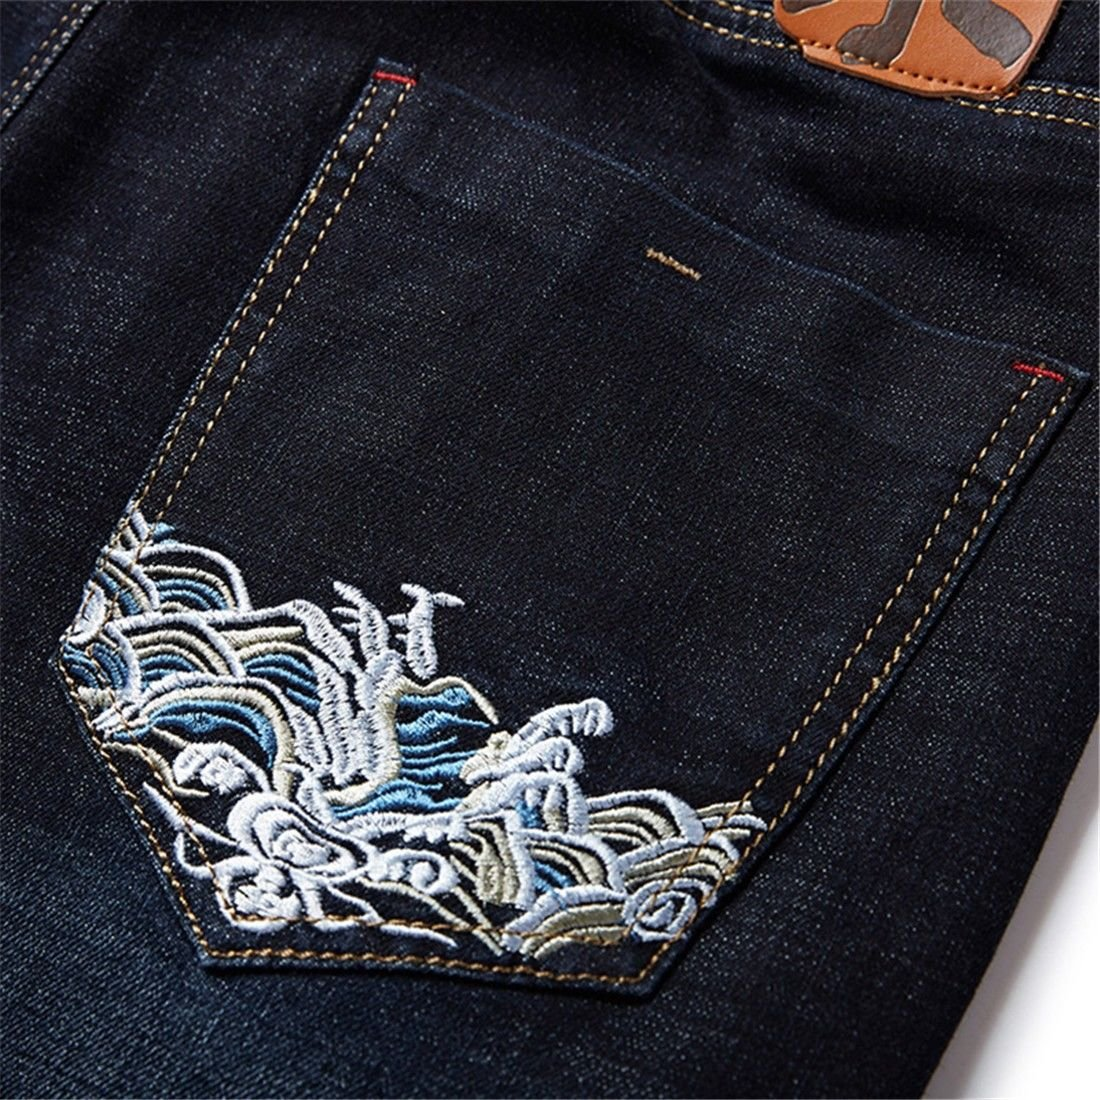 STAZSX Apparel Large Size Mens Jeans Loose Embroidered Pants